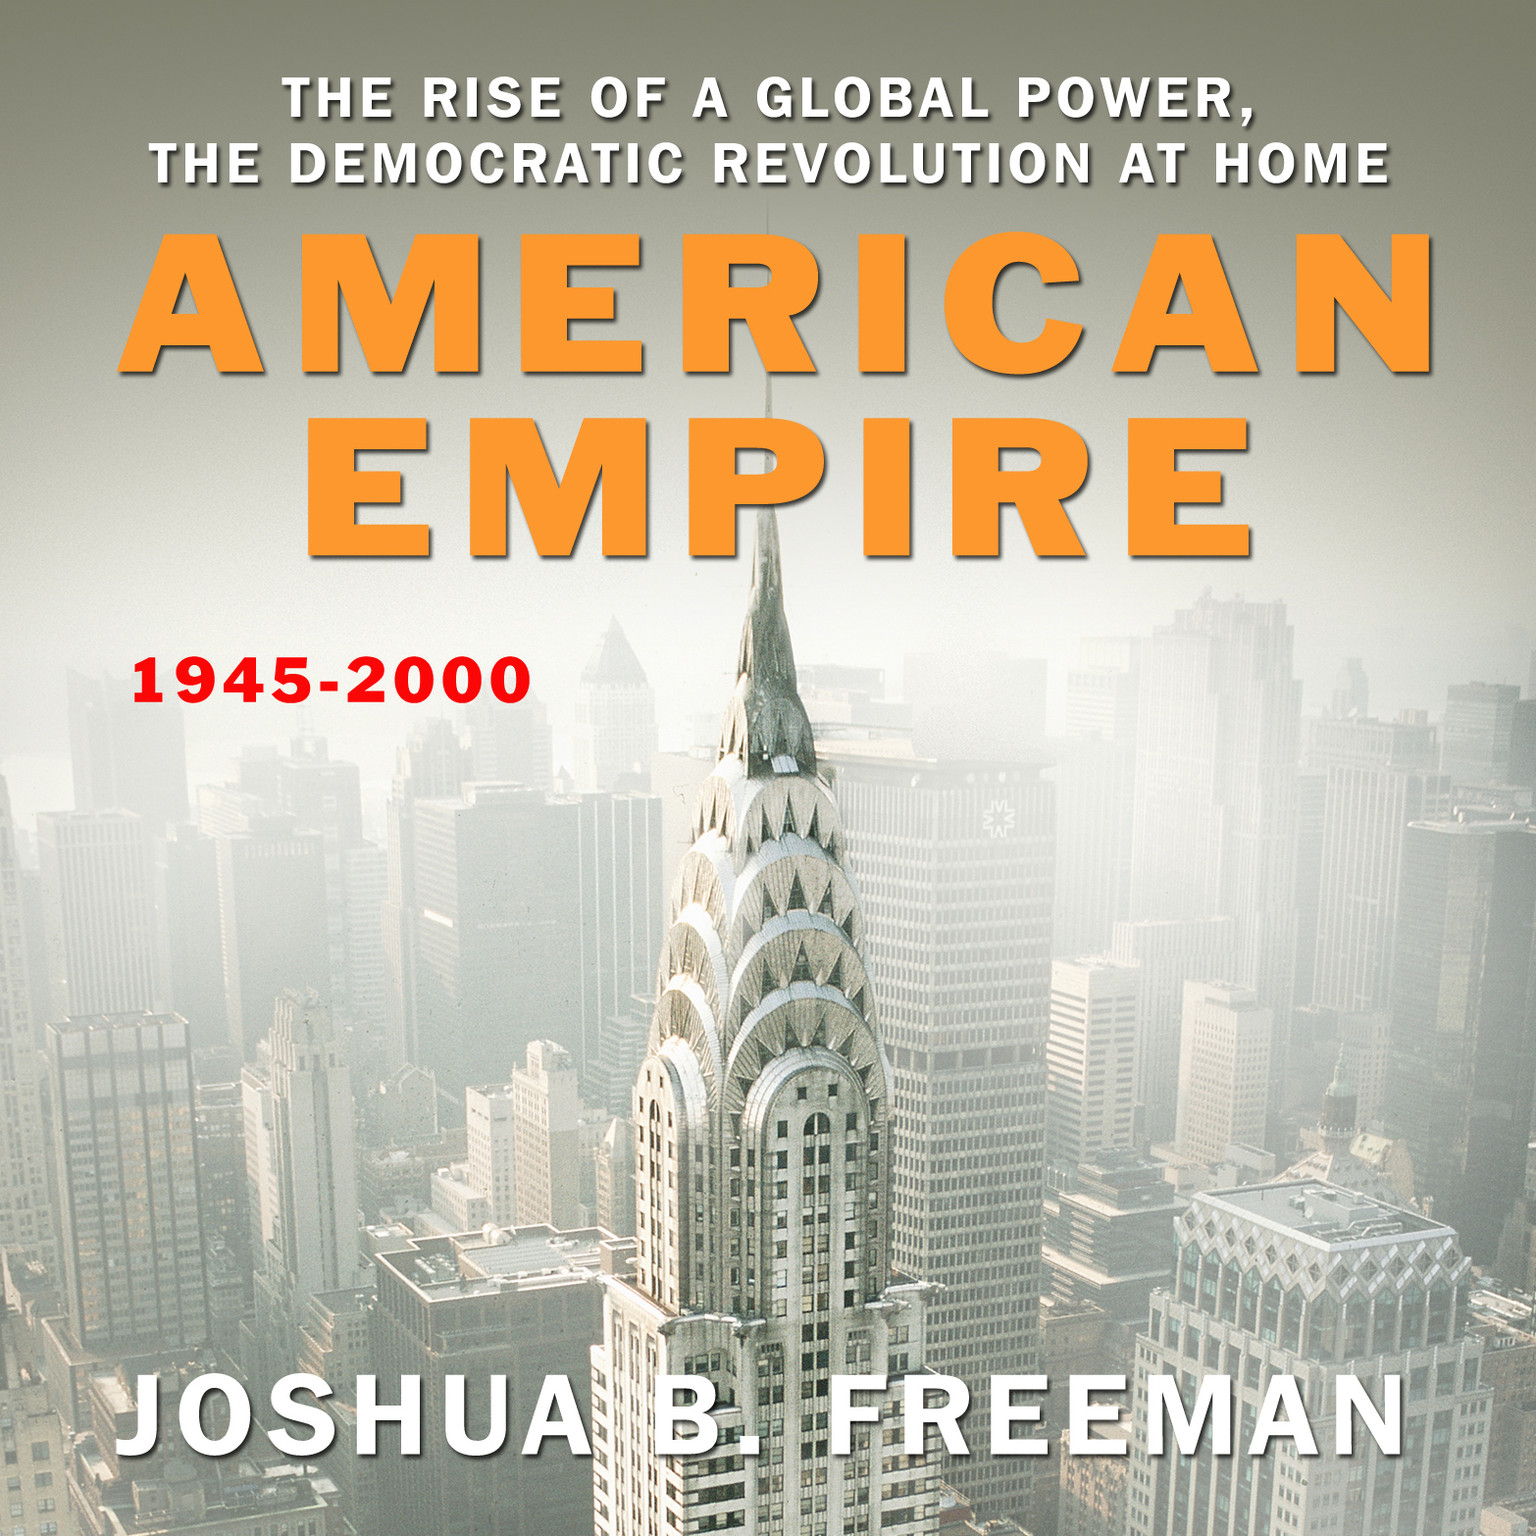 Printable American Empire: The Rise of a Global Power, the Democratic Revolution at Home 1945-2000 Audiobook Cover Art